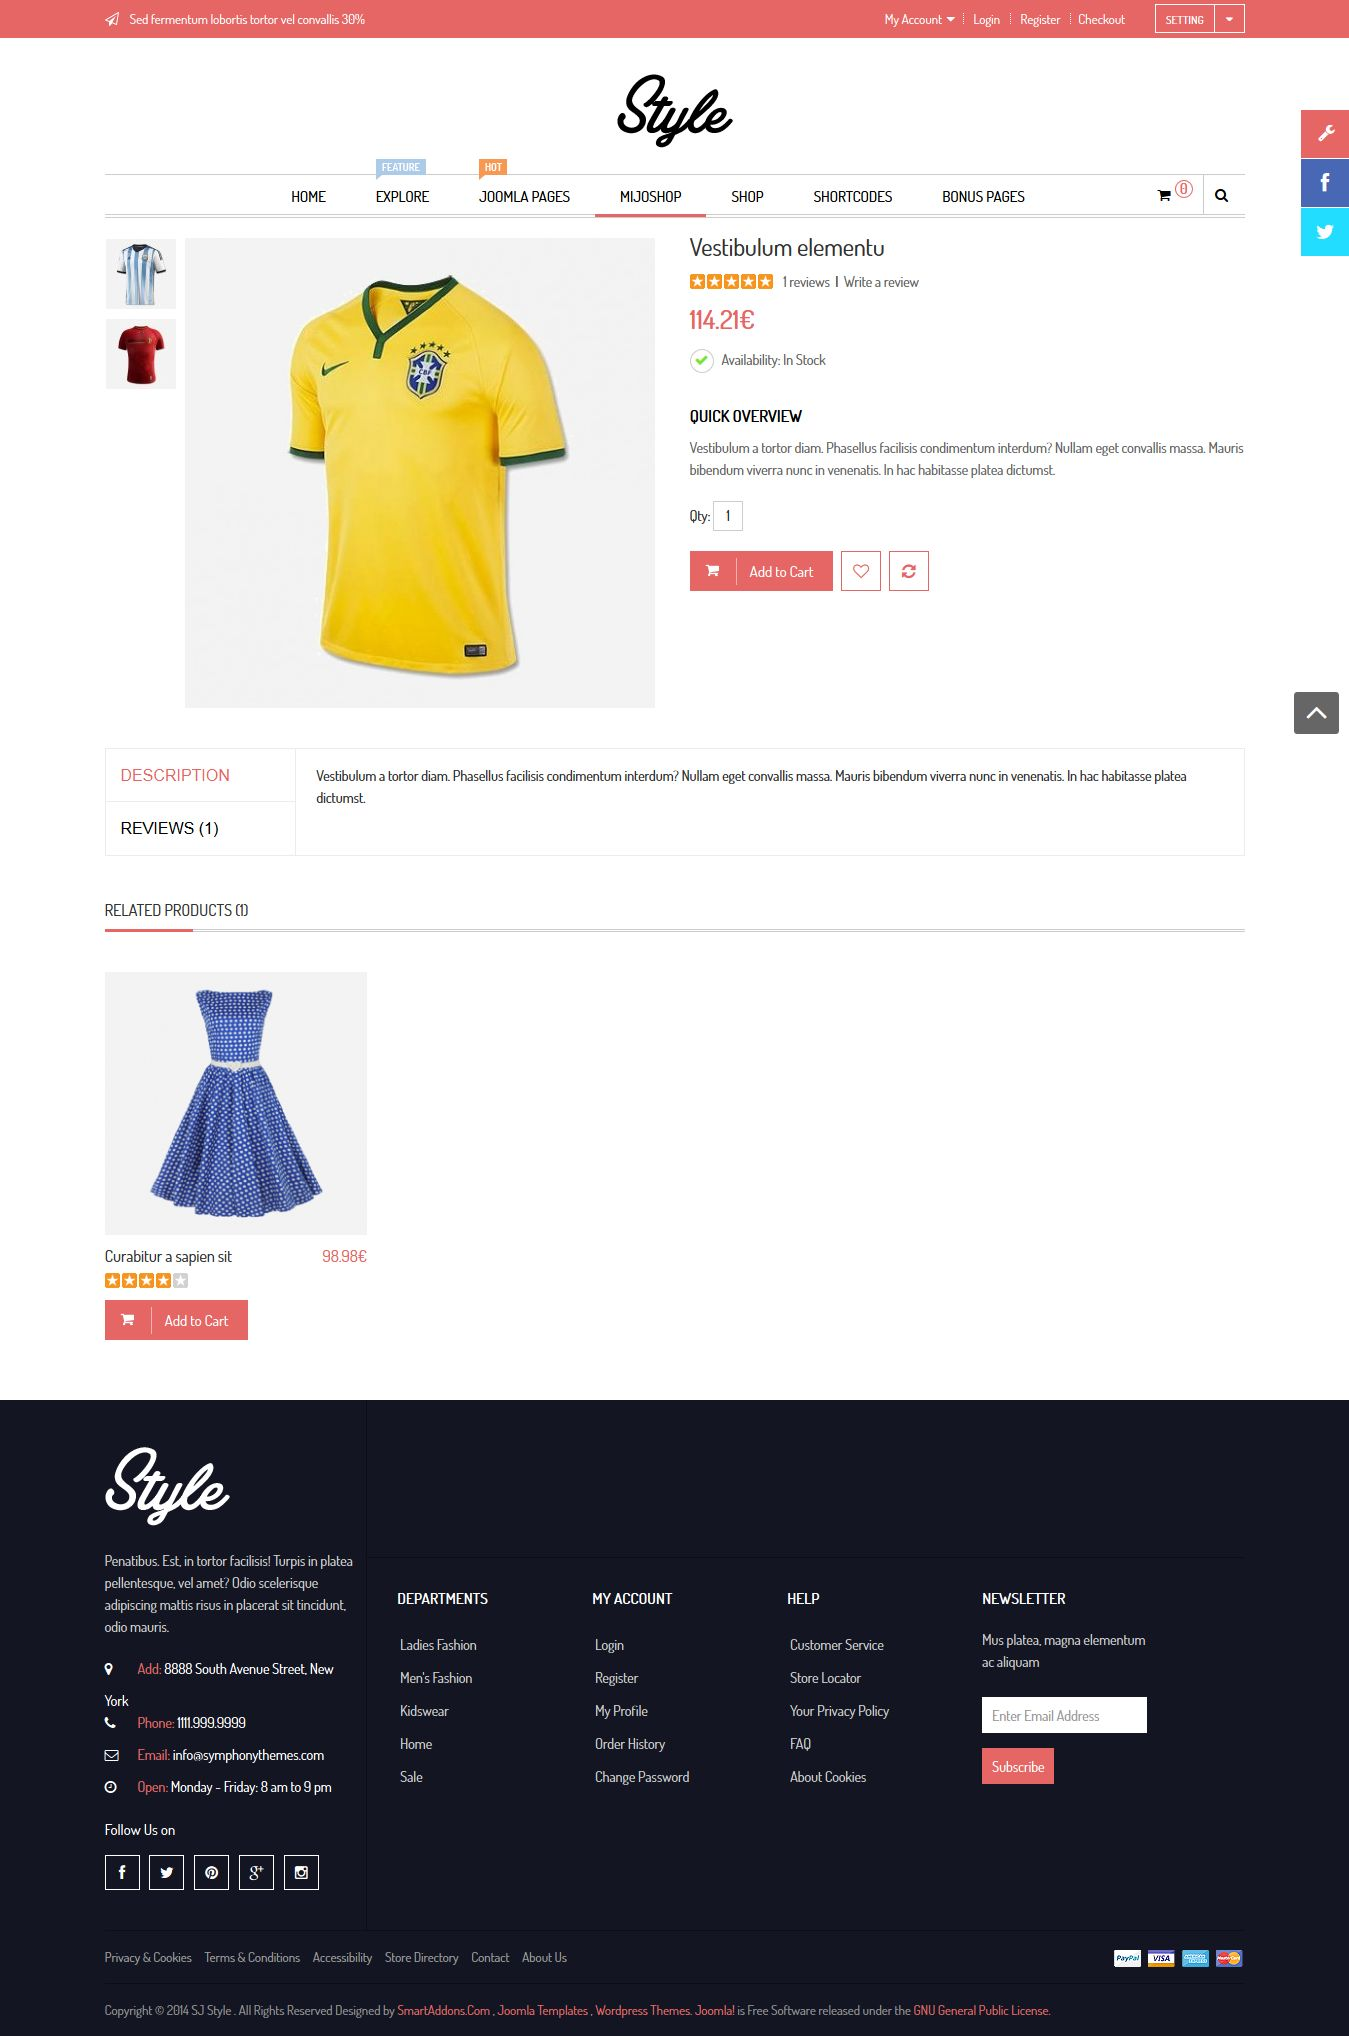 SJ Style - Responsive Joomla eCommerce Template - product-detail.jpg